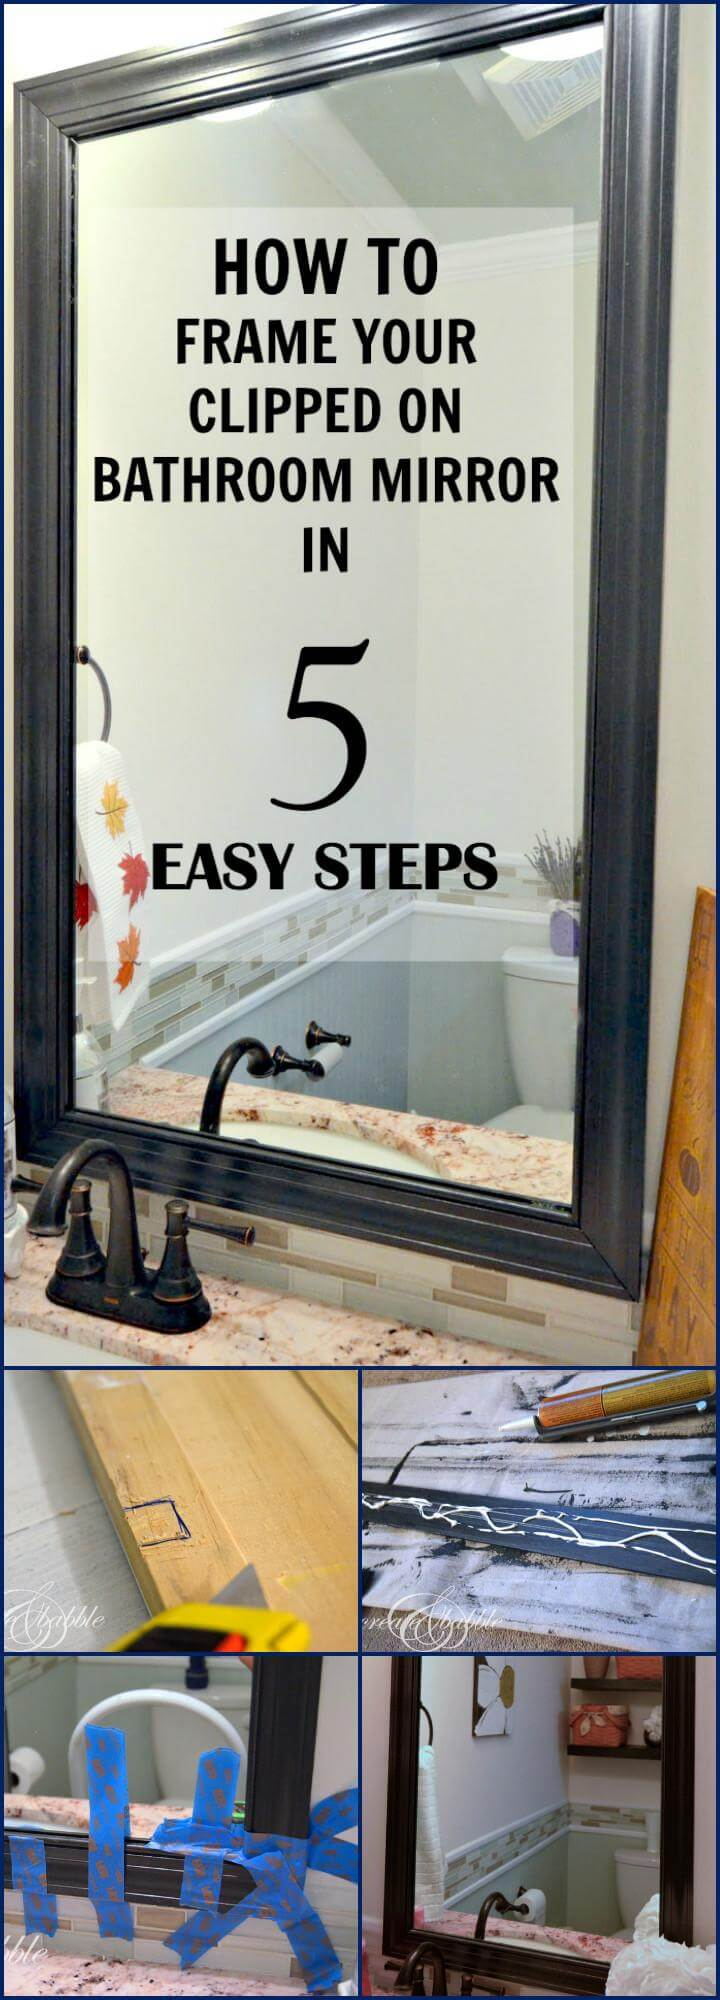 50 DIY Bathroom Projects to Remodel Step by Step Page 2